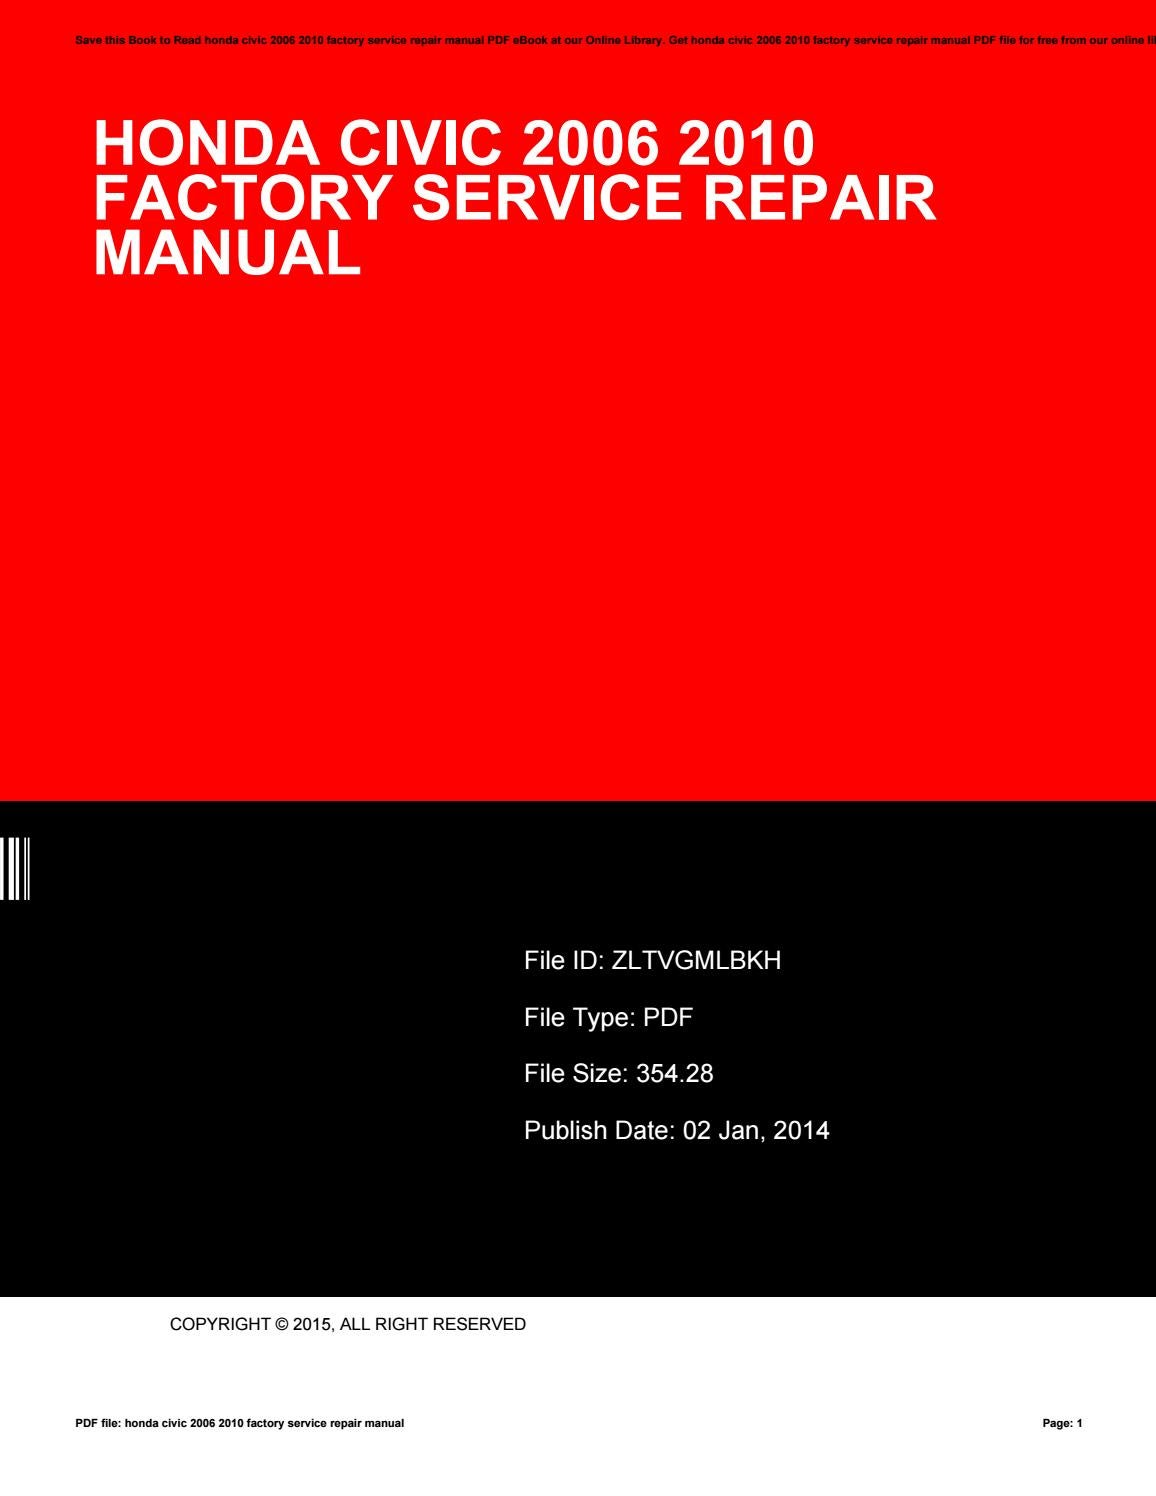 Honda civic 2006 2010 factory service repair manual by CarolPlant4820 -  issuu